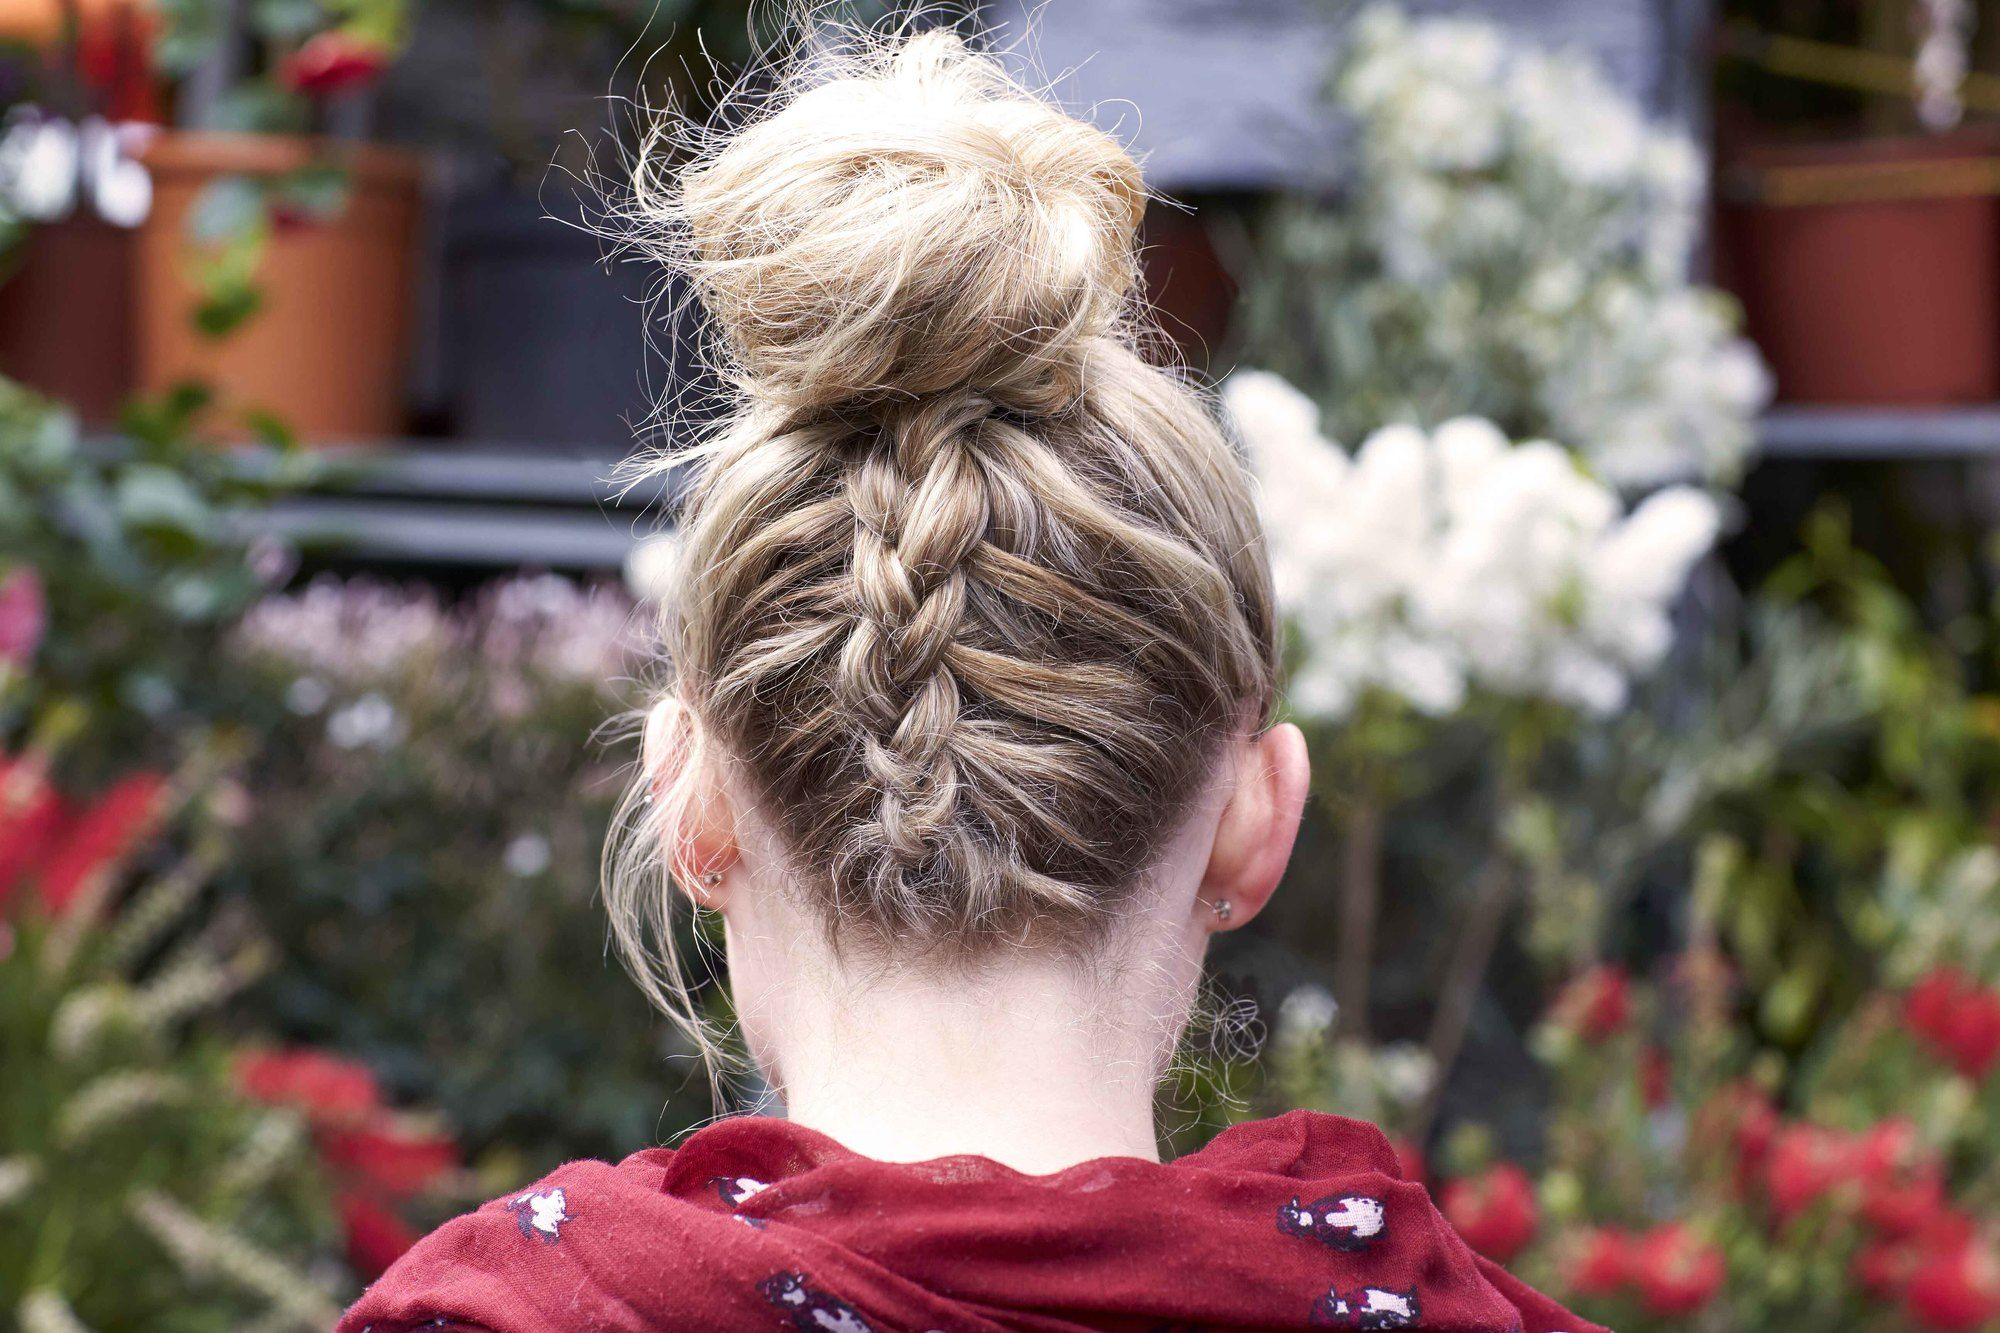 braid styles on an upside down bun